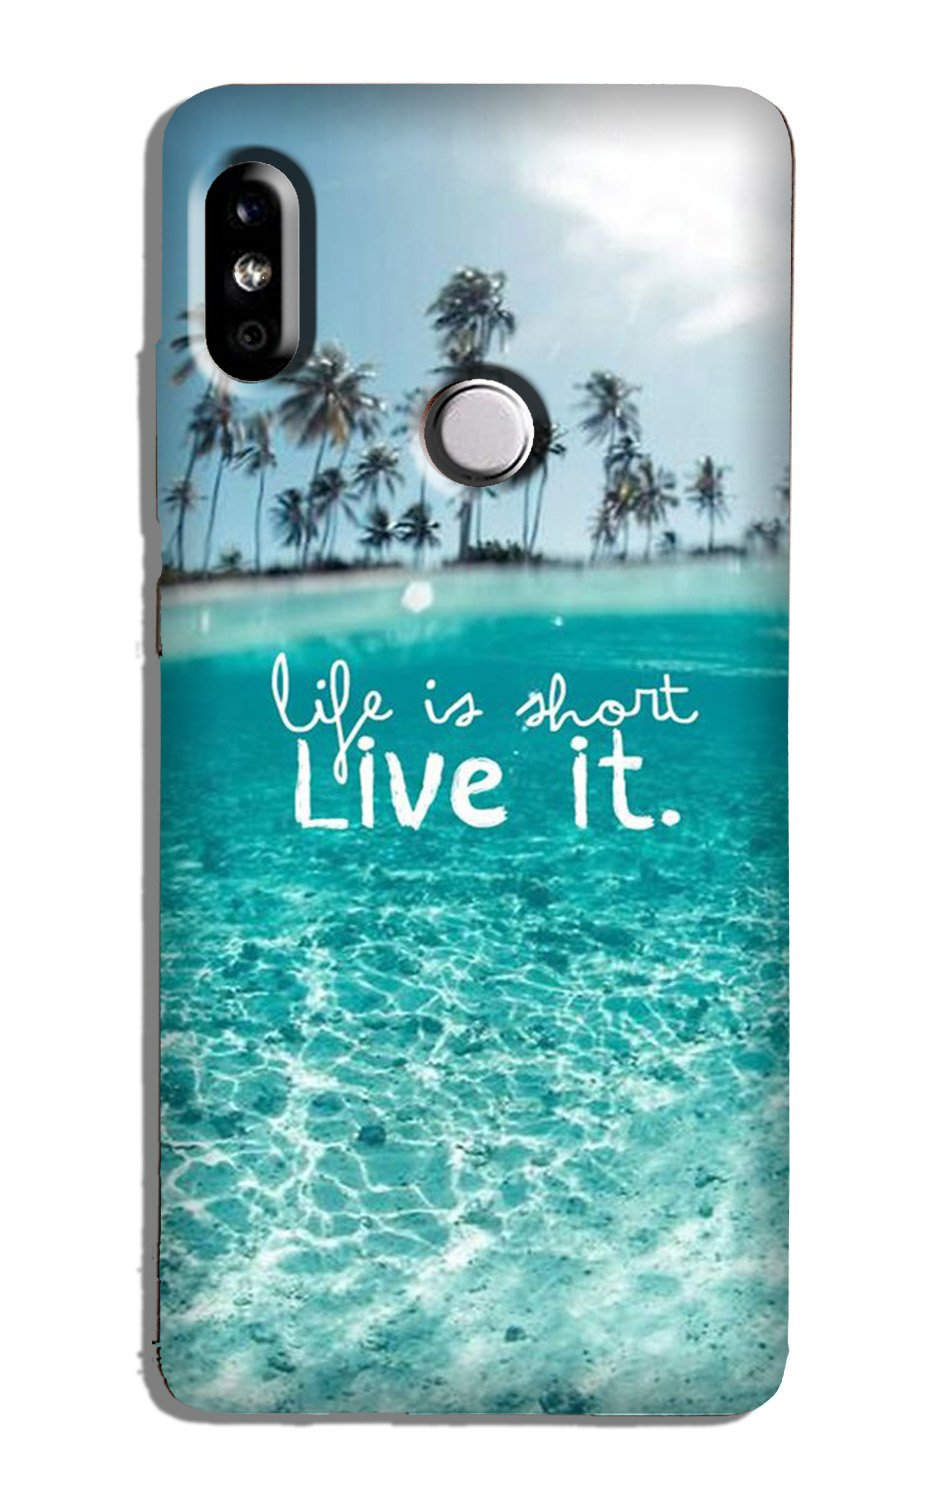 Life is short live it Case for Redmi Note 5 Pro